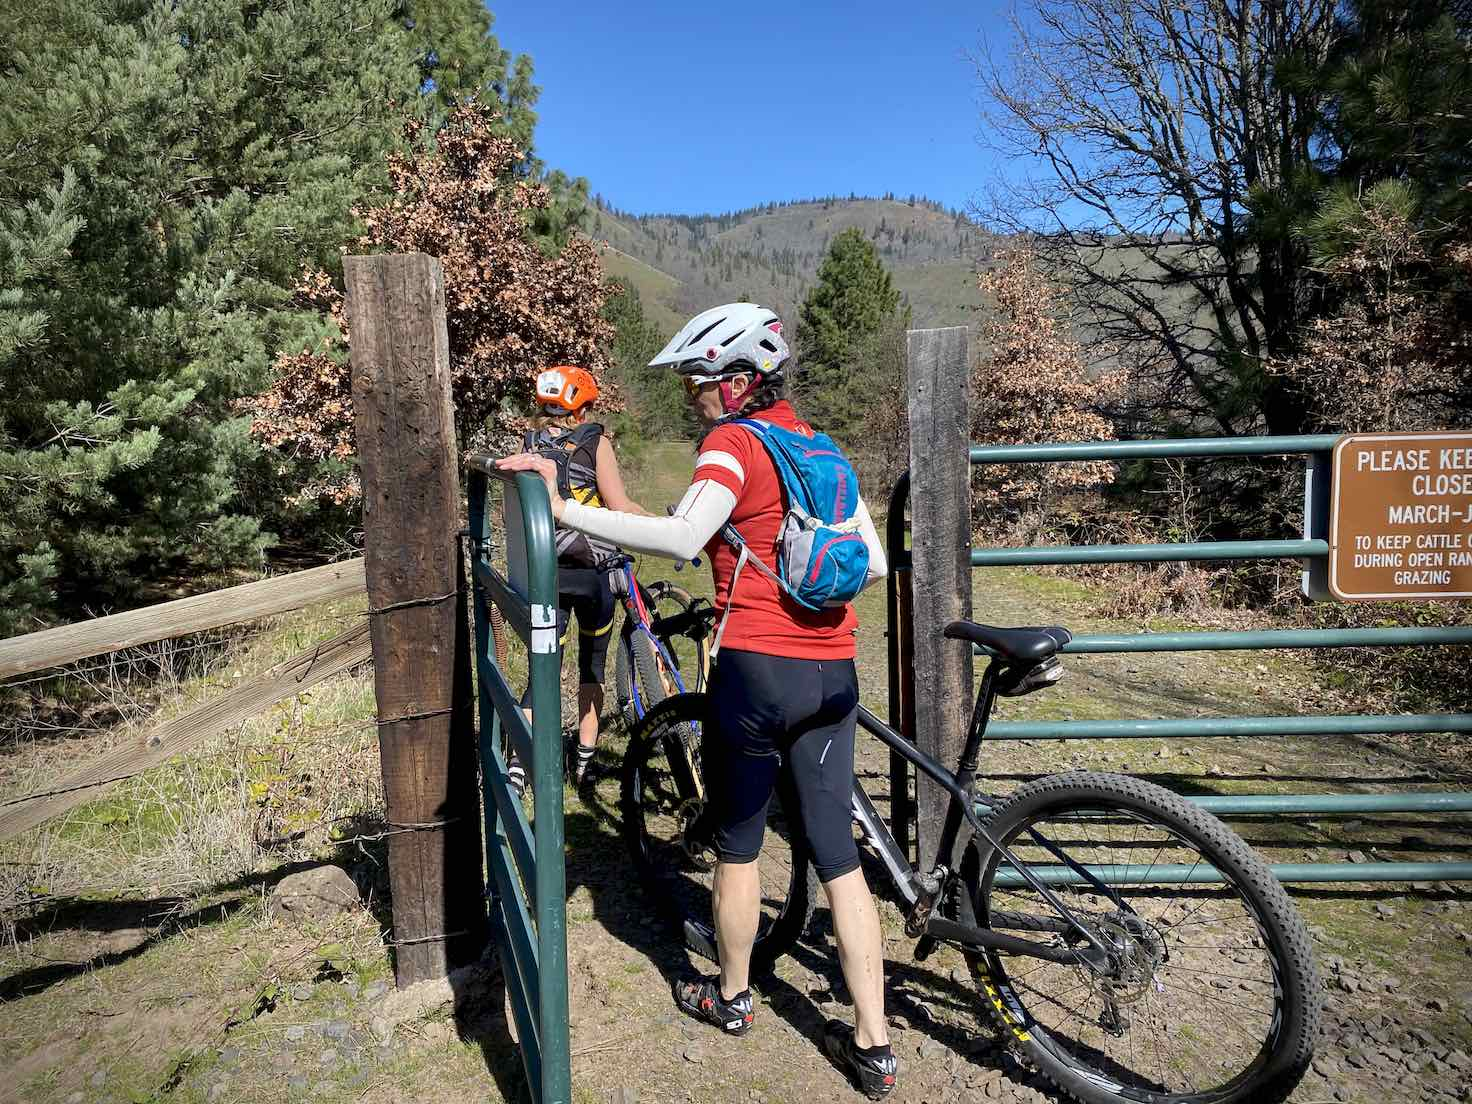 Cyclists passing through one of the several gates along the Klickitat Trail.